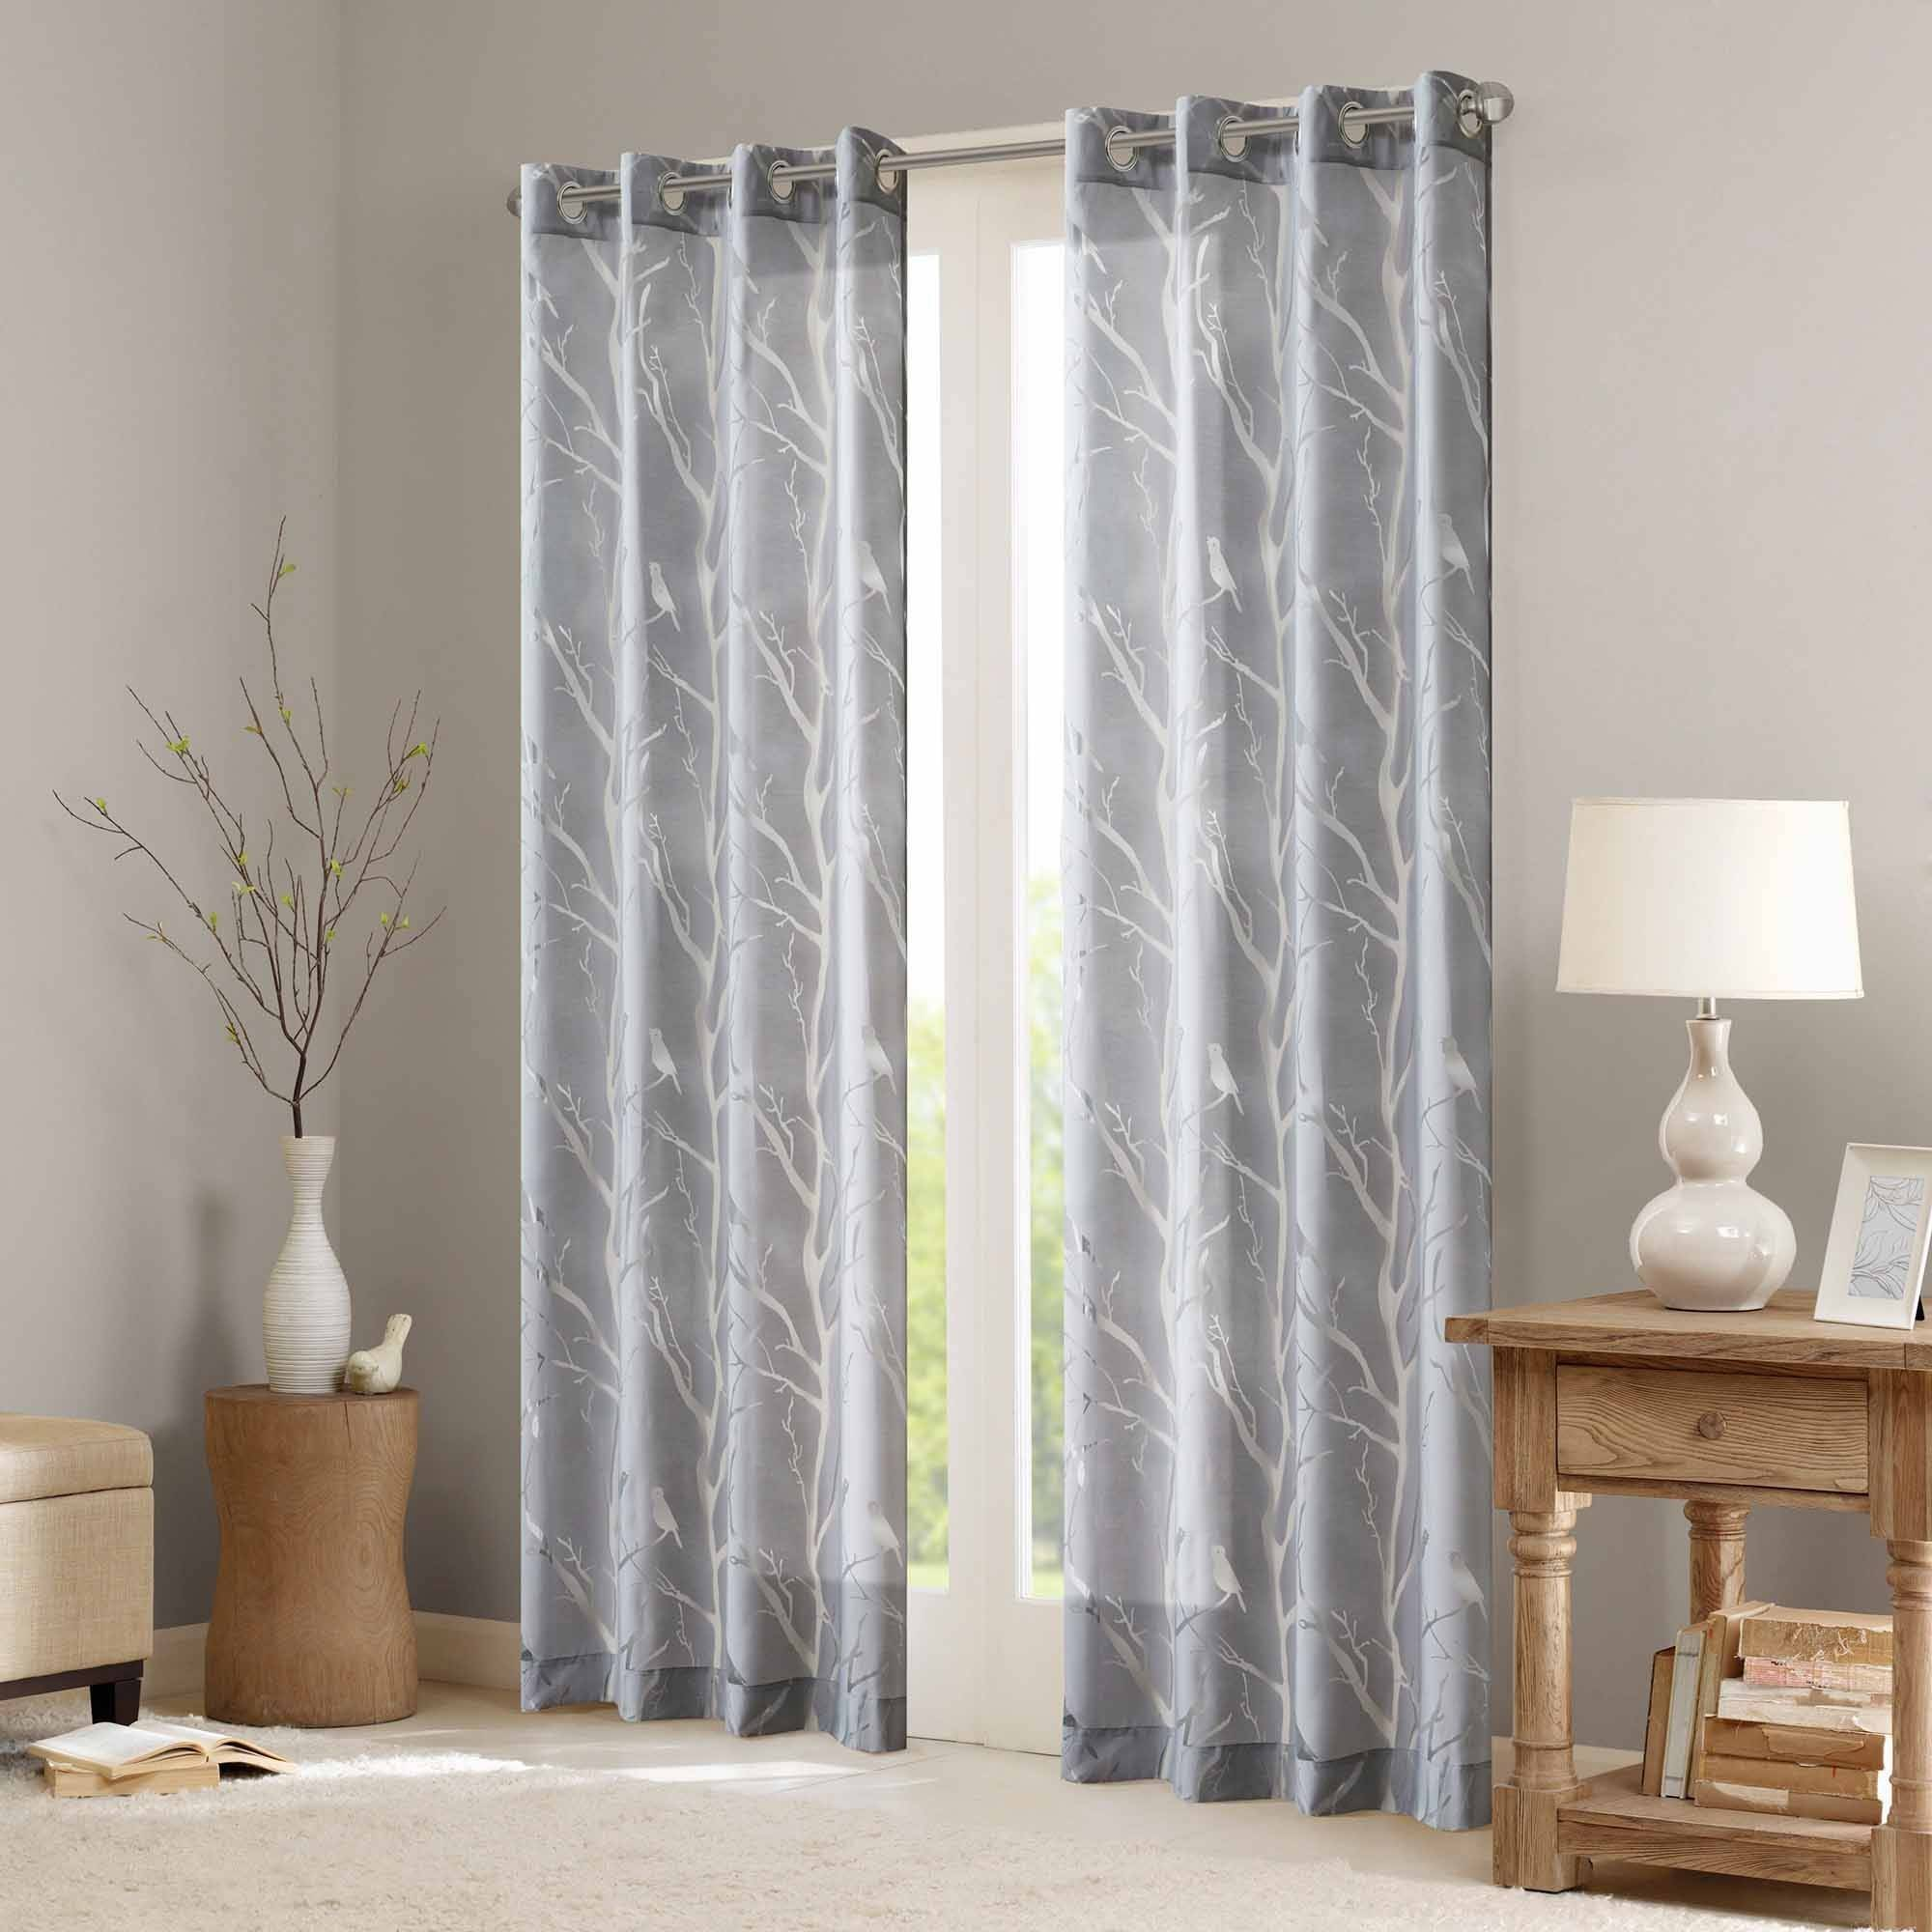 classic trendy inspirations craft door curtain curtains sidelight designs sidelights photos breathtaking treatments for thermatru window doors fresh front with fascinating today rustic